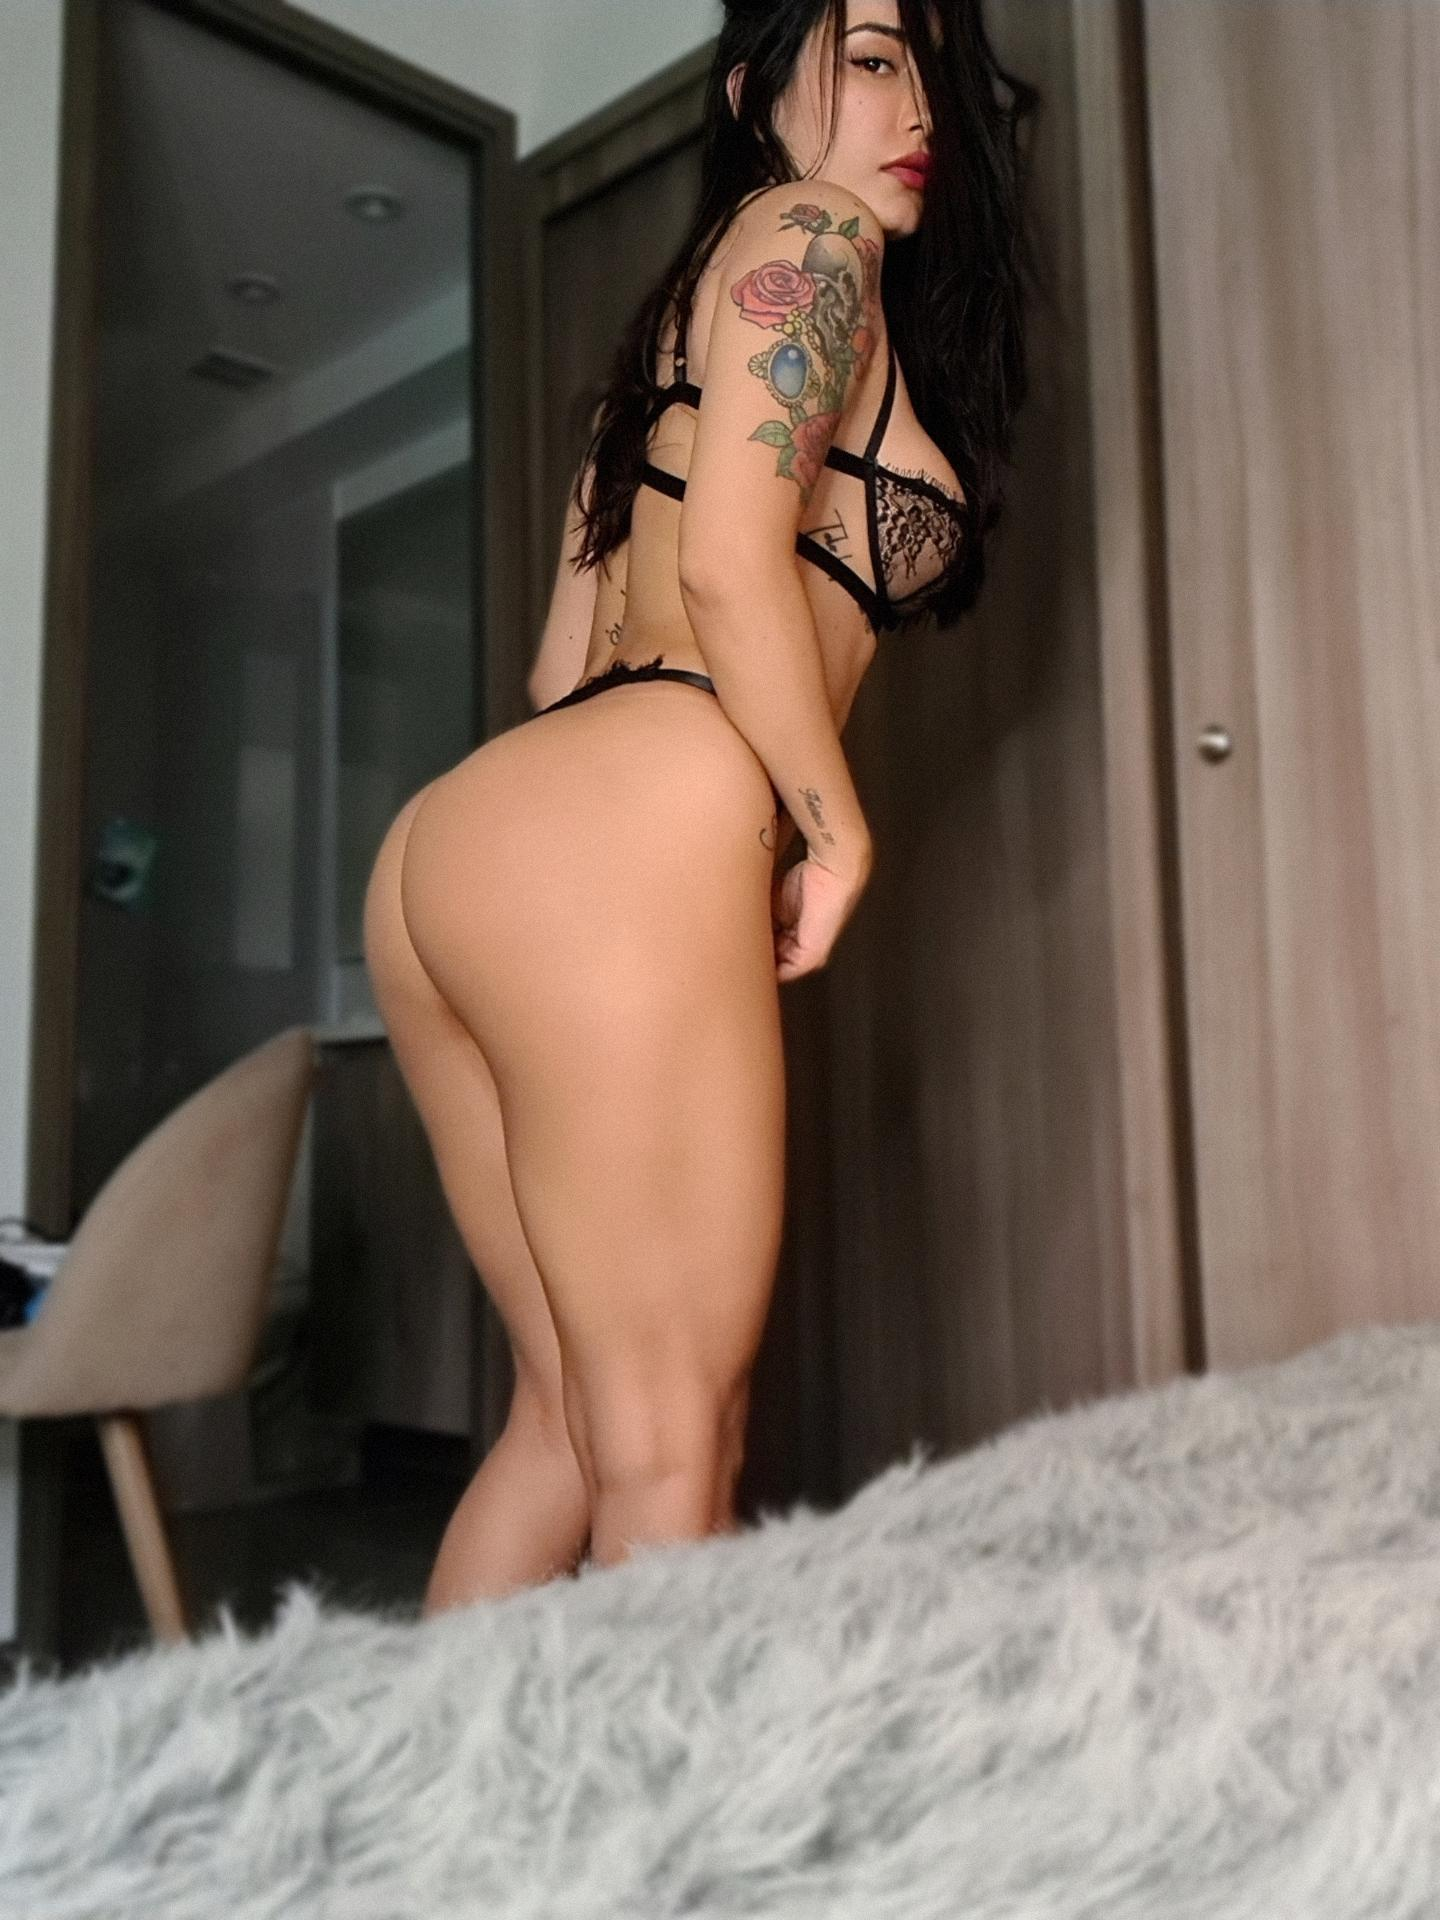 are crazy shemale babe using massive anal dildo something is